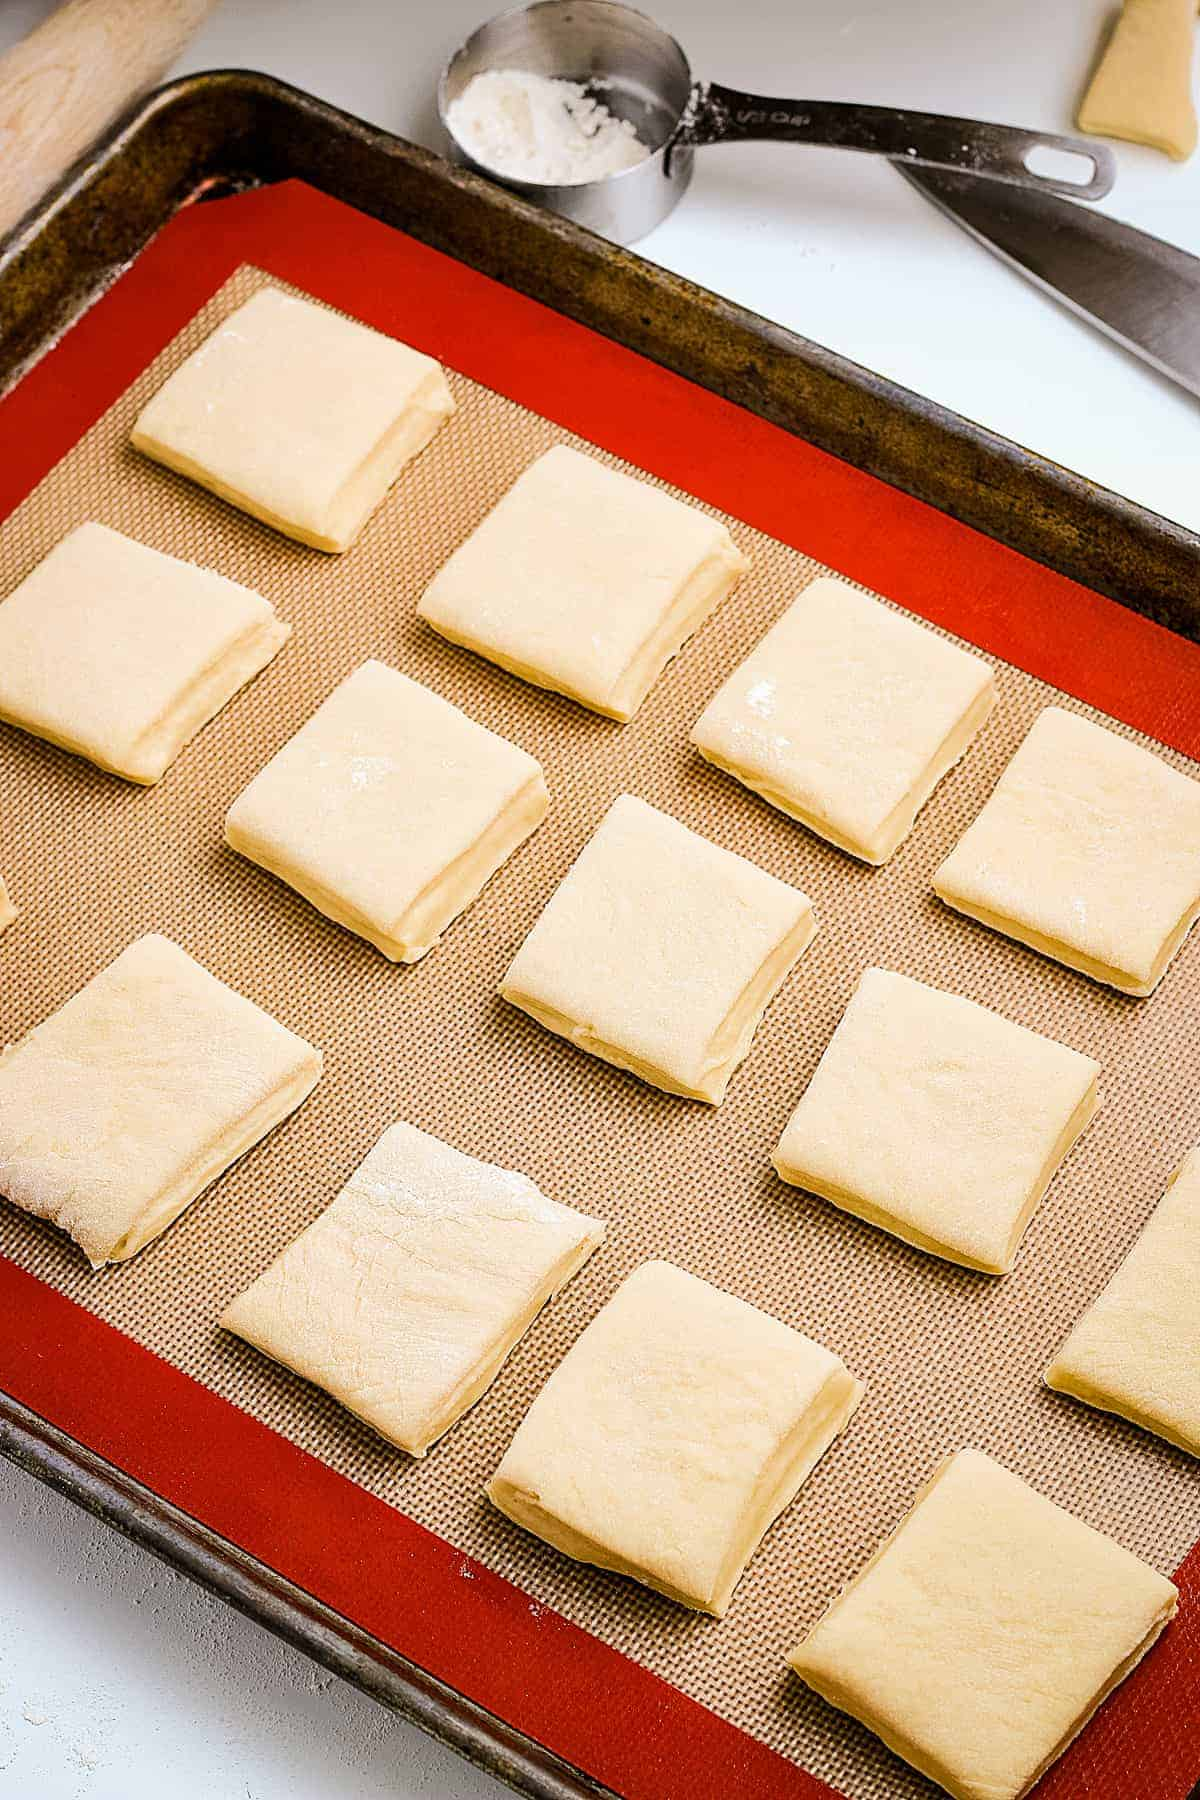 Baking sheet with roll dough before proofing